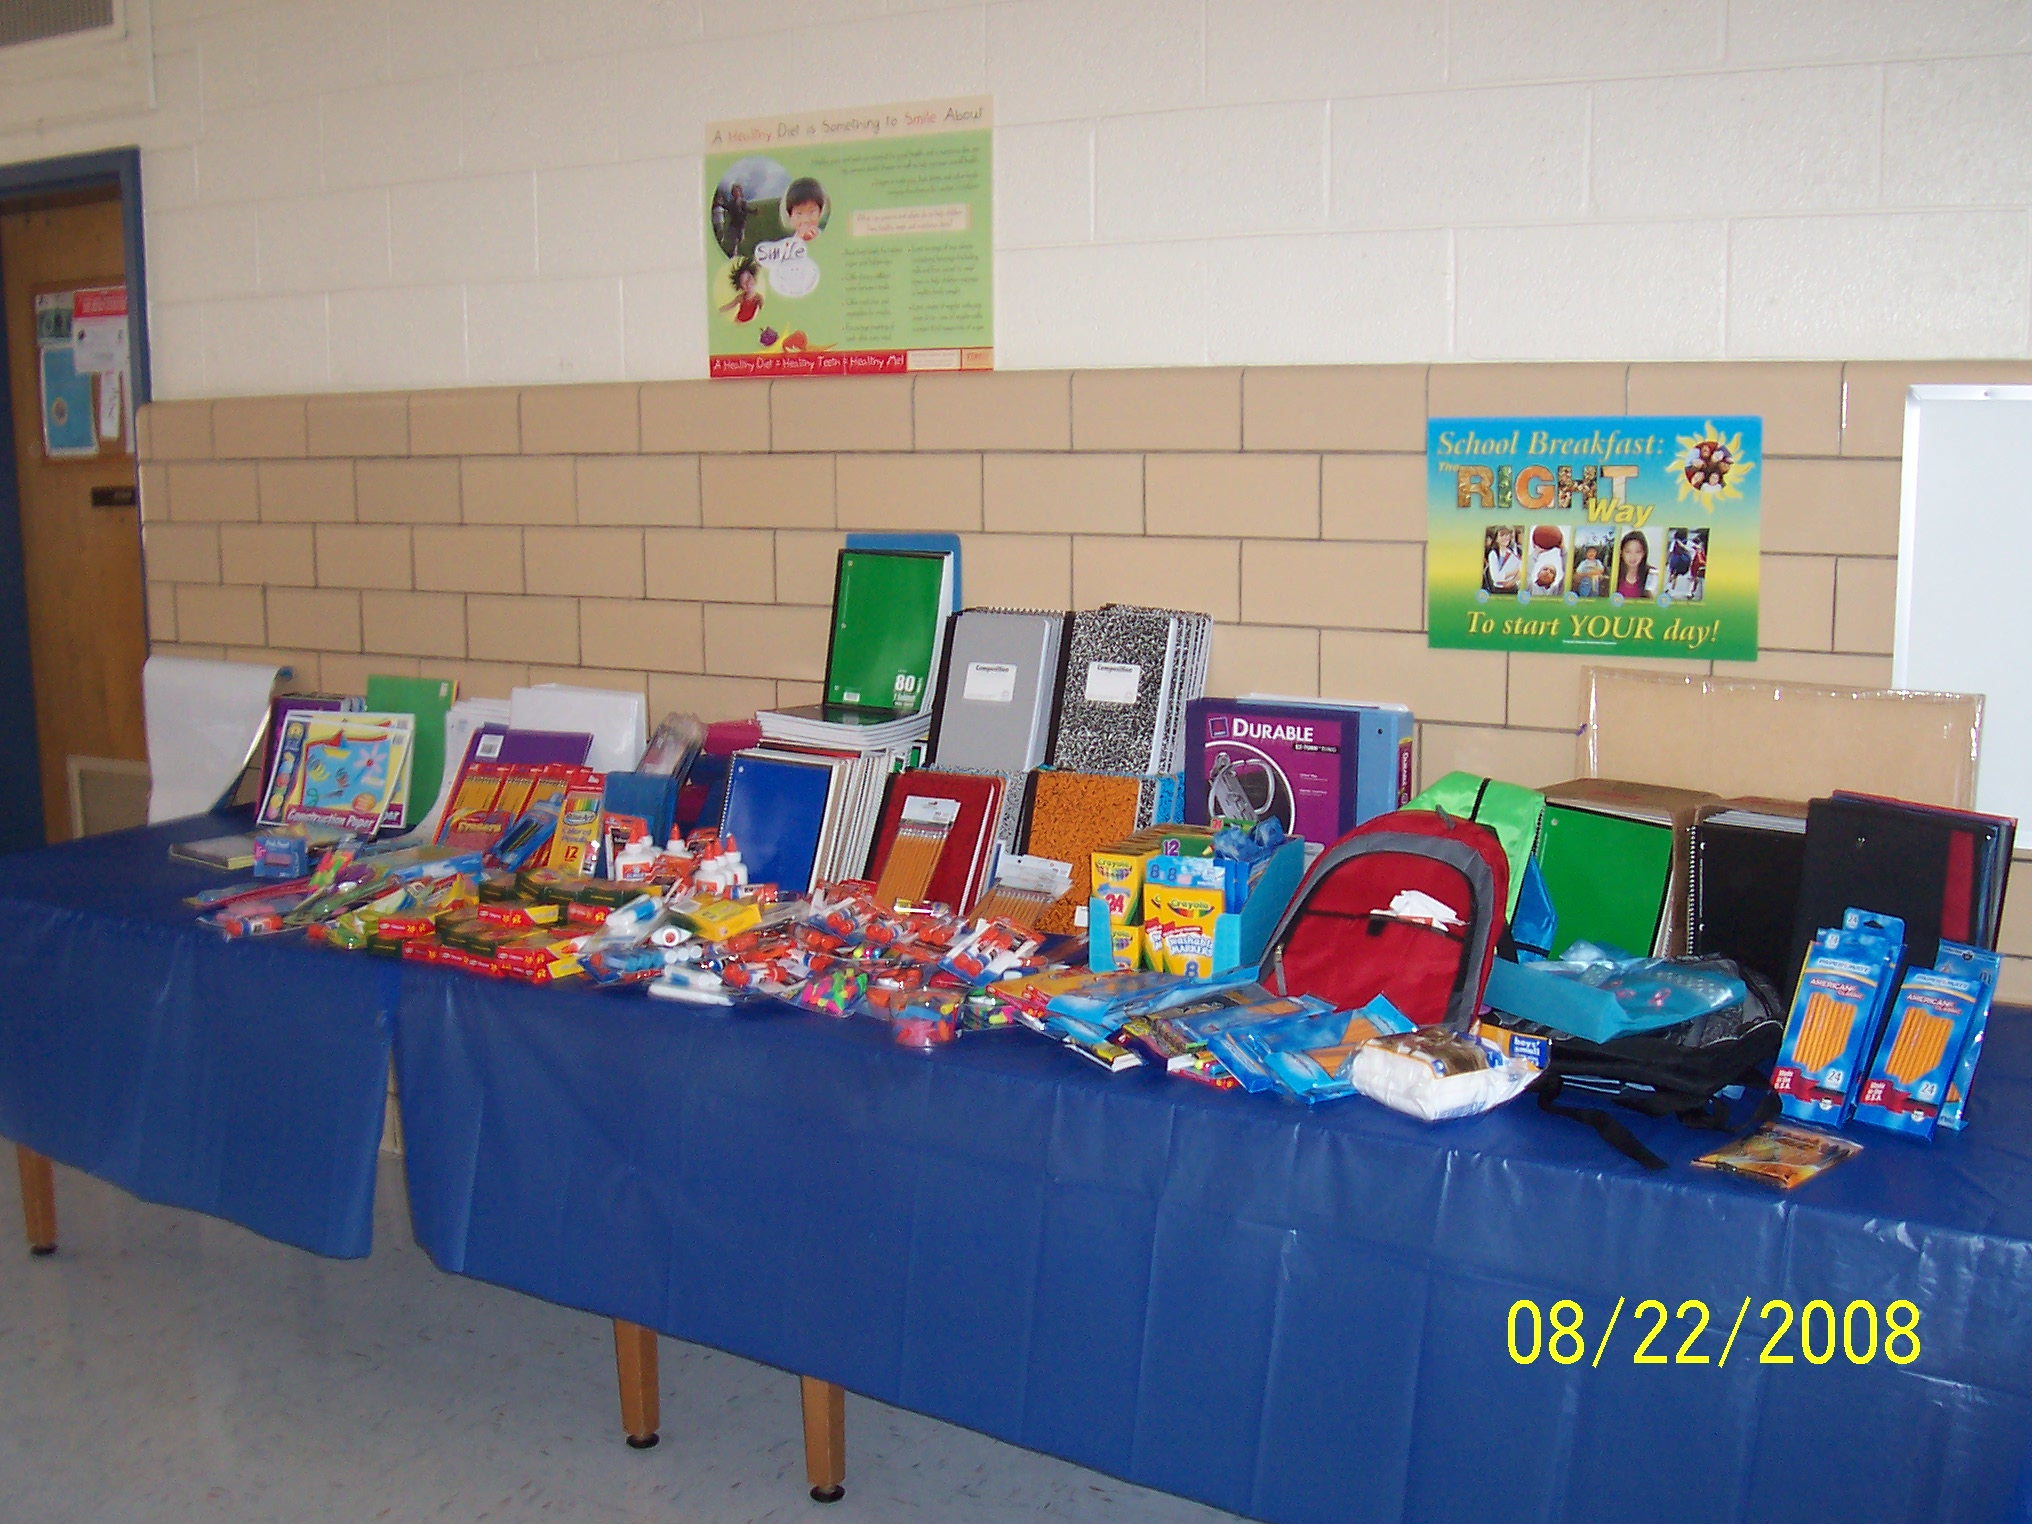 School supplies donated